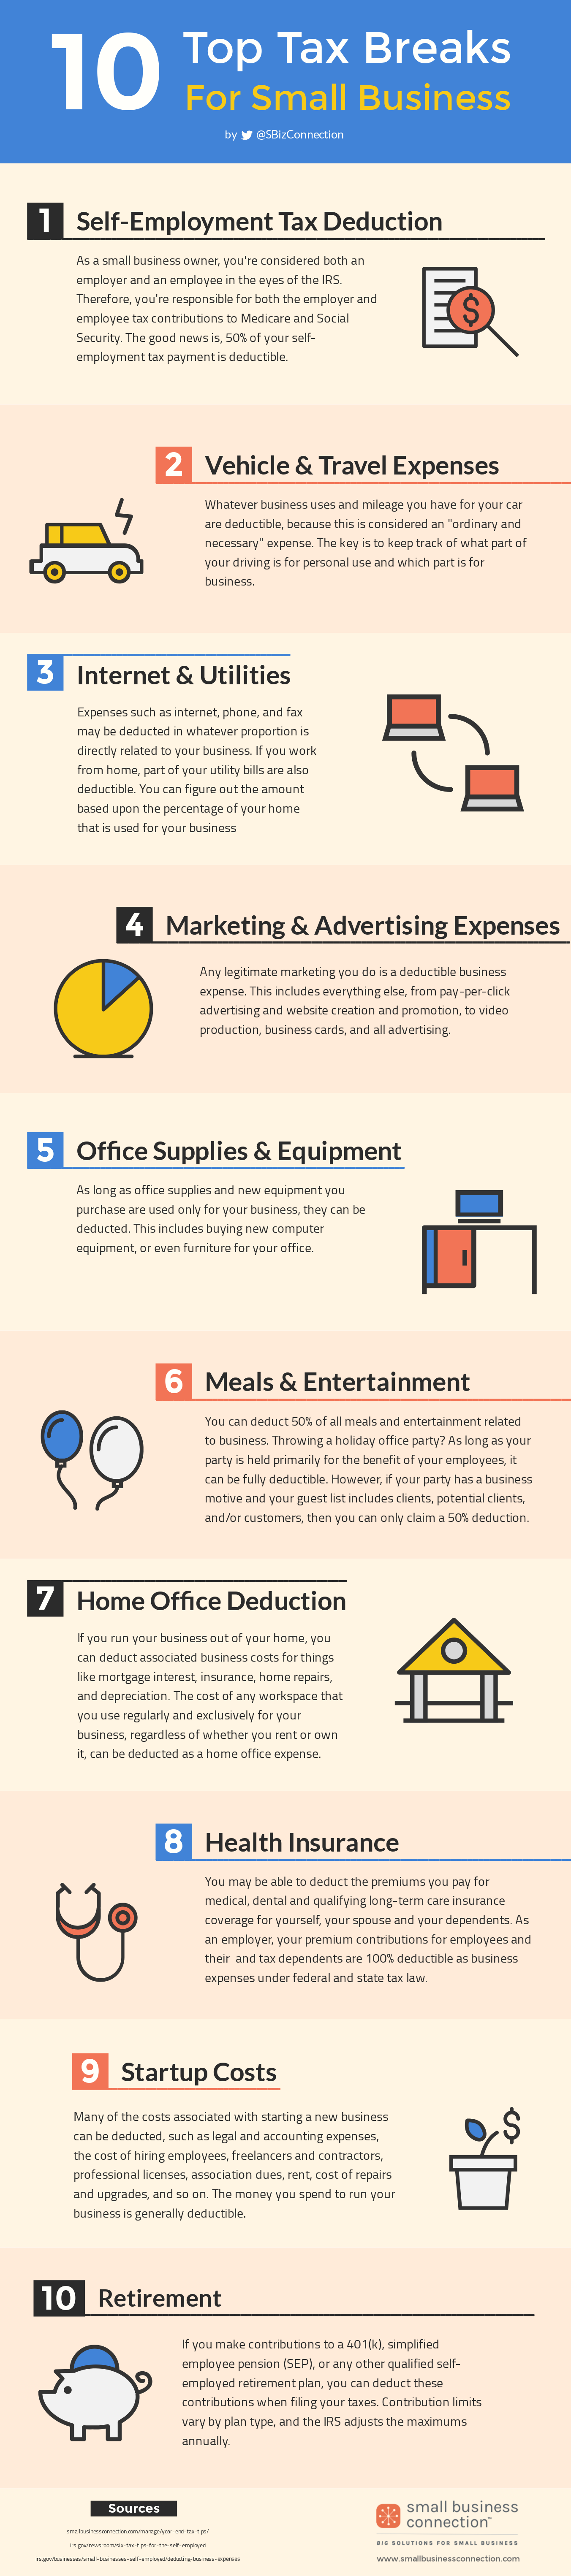 Infographic: 10 Top Tax Breaks For Small Business